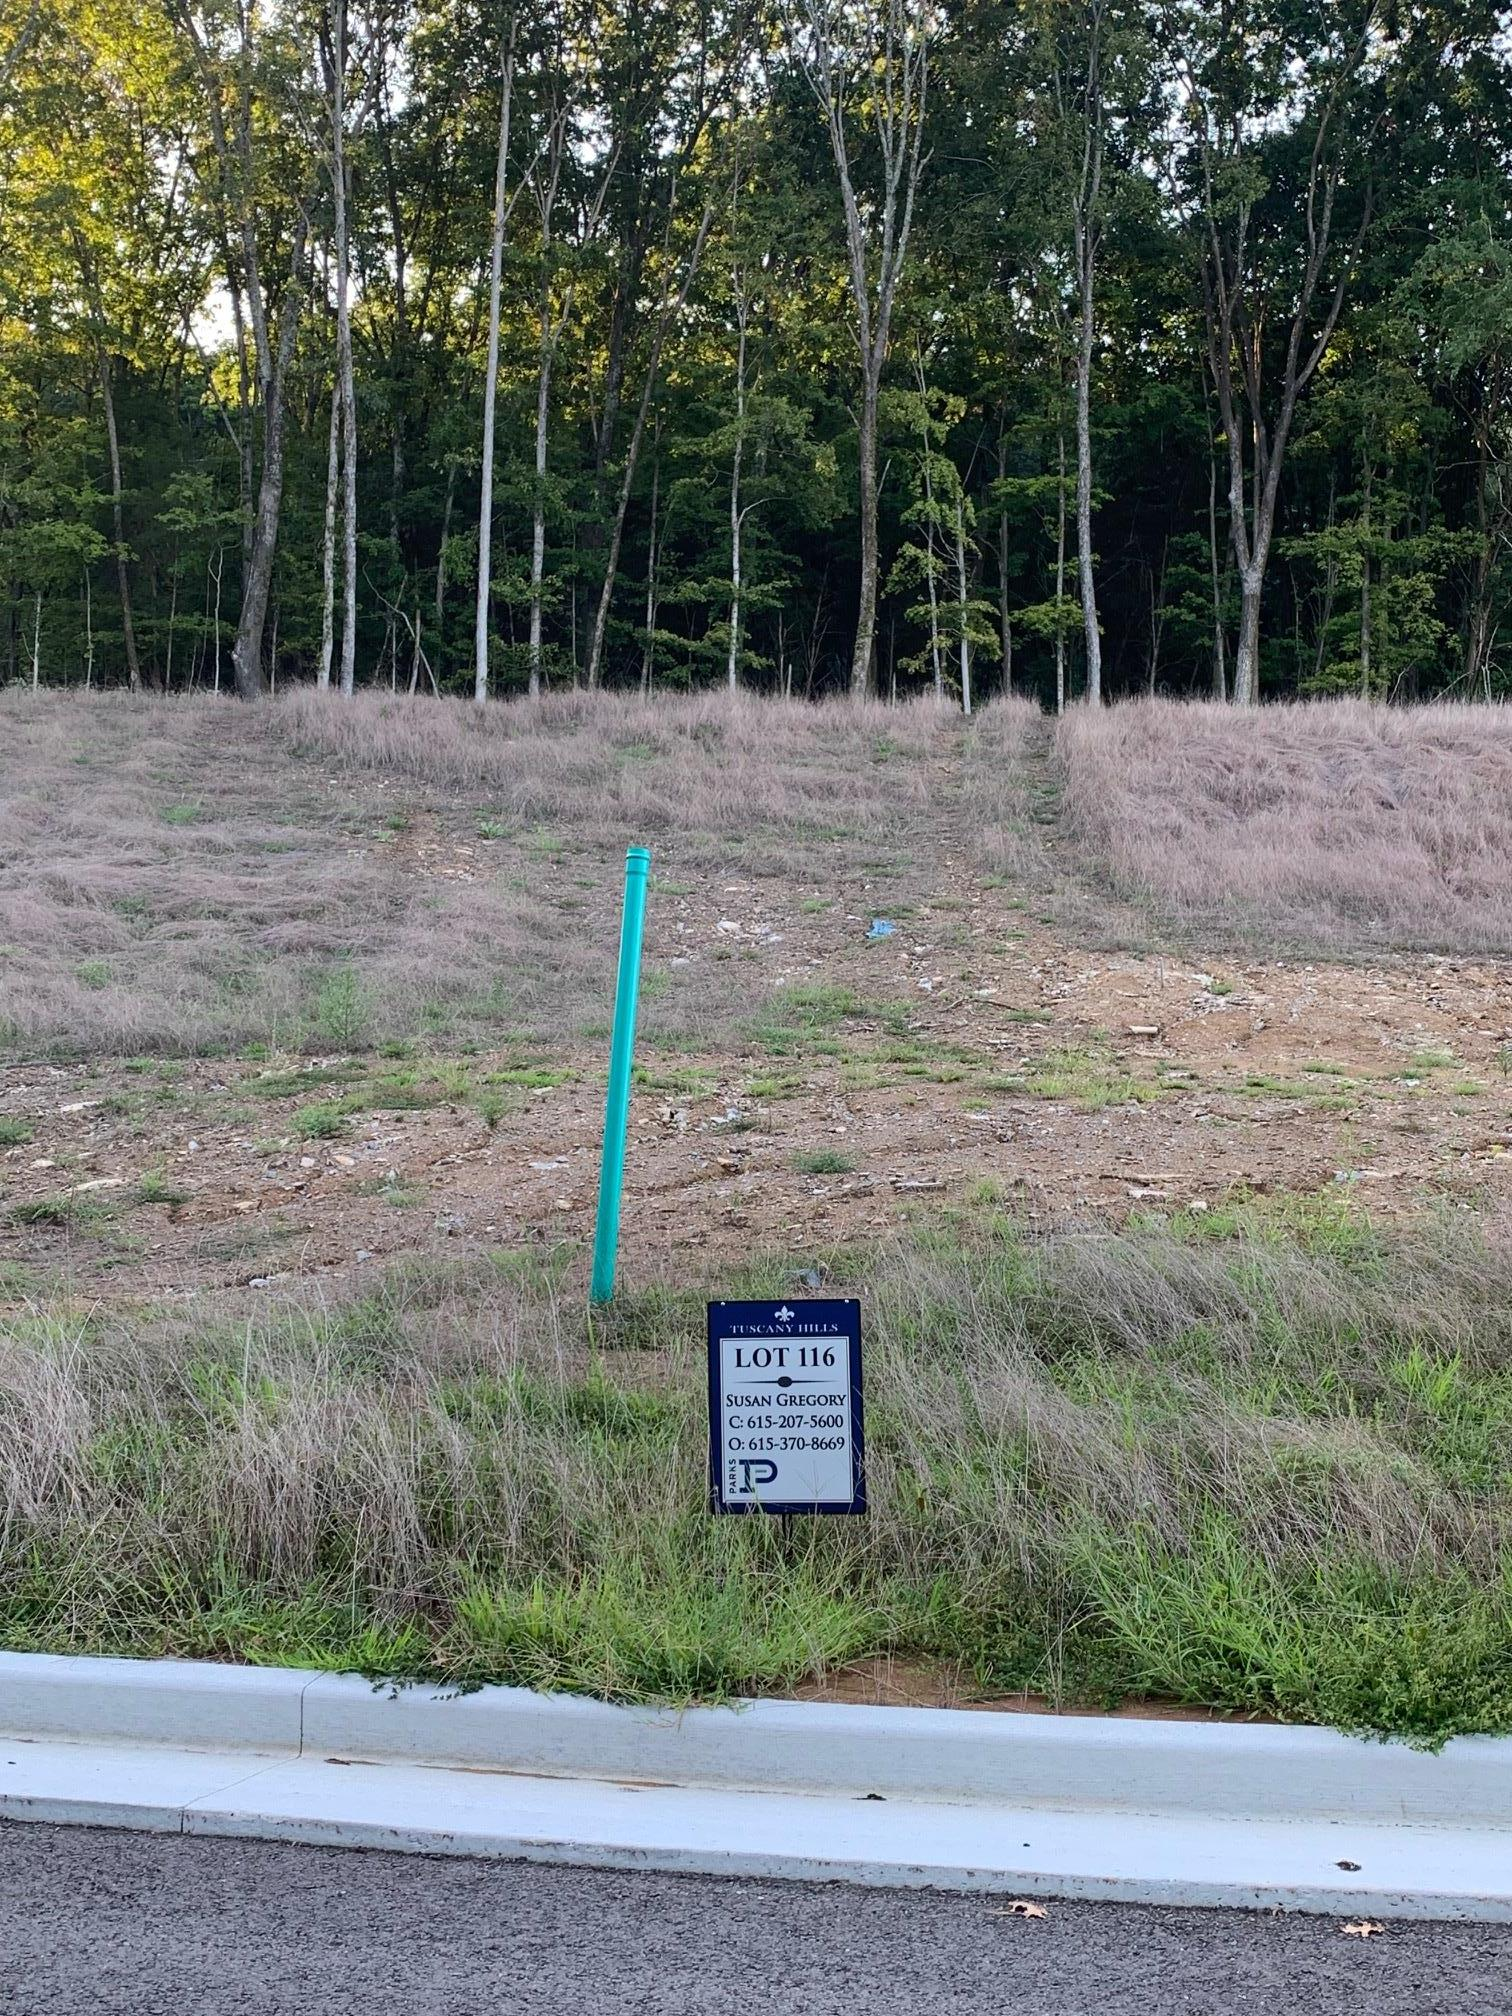 1759 Umbria Drive, Lot 116 Property Photo